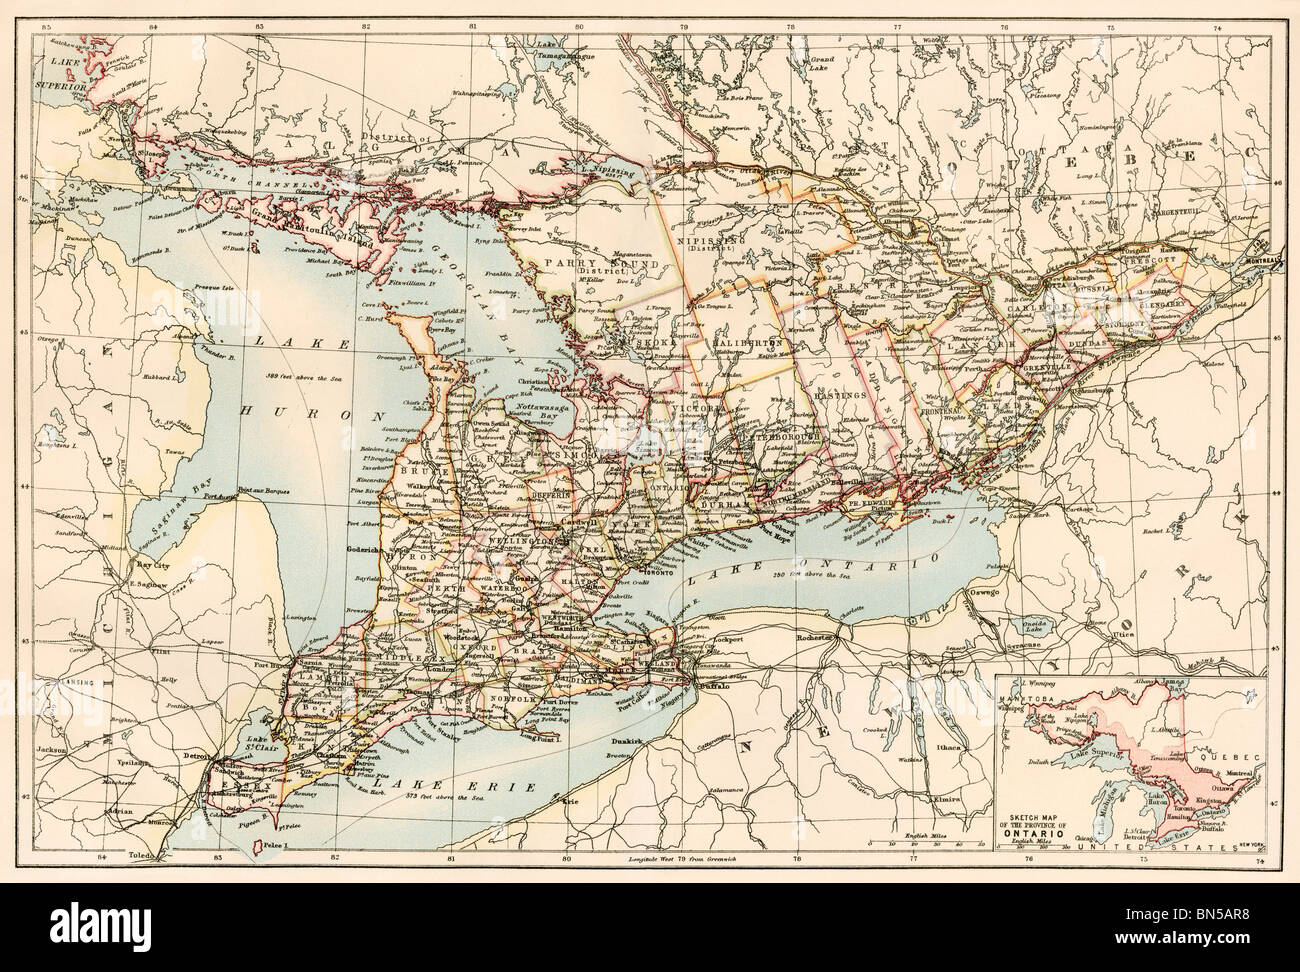 Ontario Map Stock Photos   Ontario Map Stock Images   Alamy Map of Ontario  Canada  1870s  Color lithograph   Stock Image